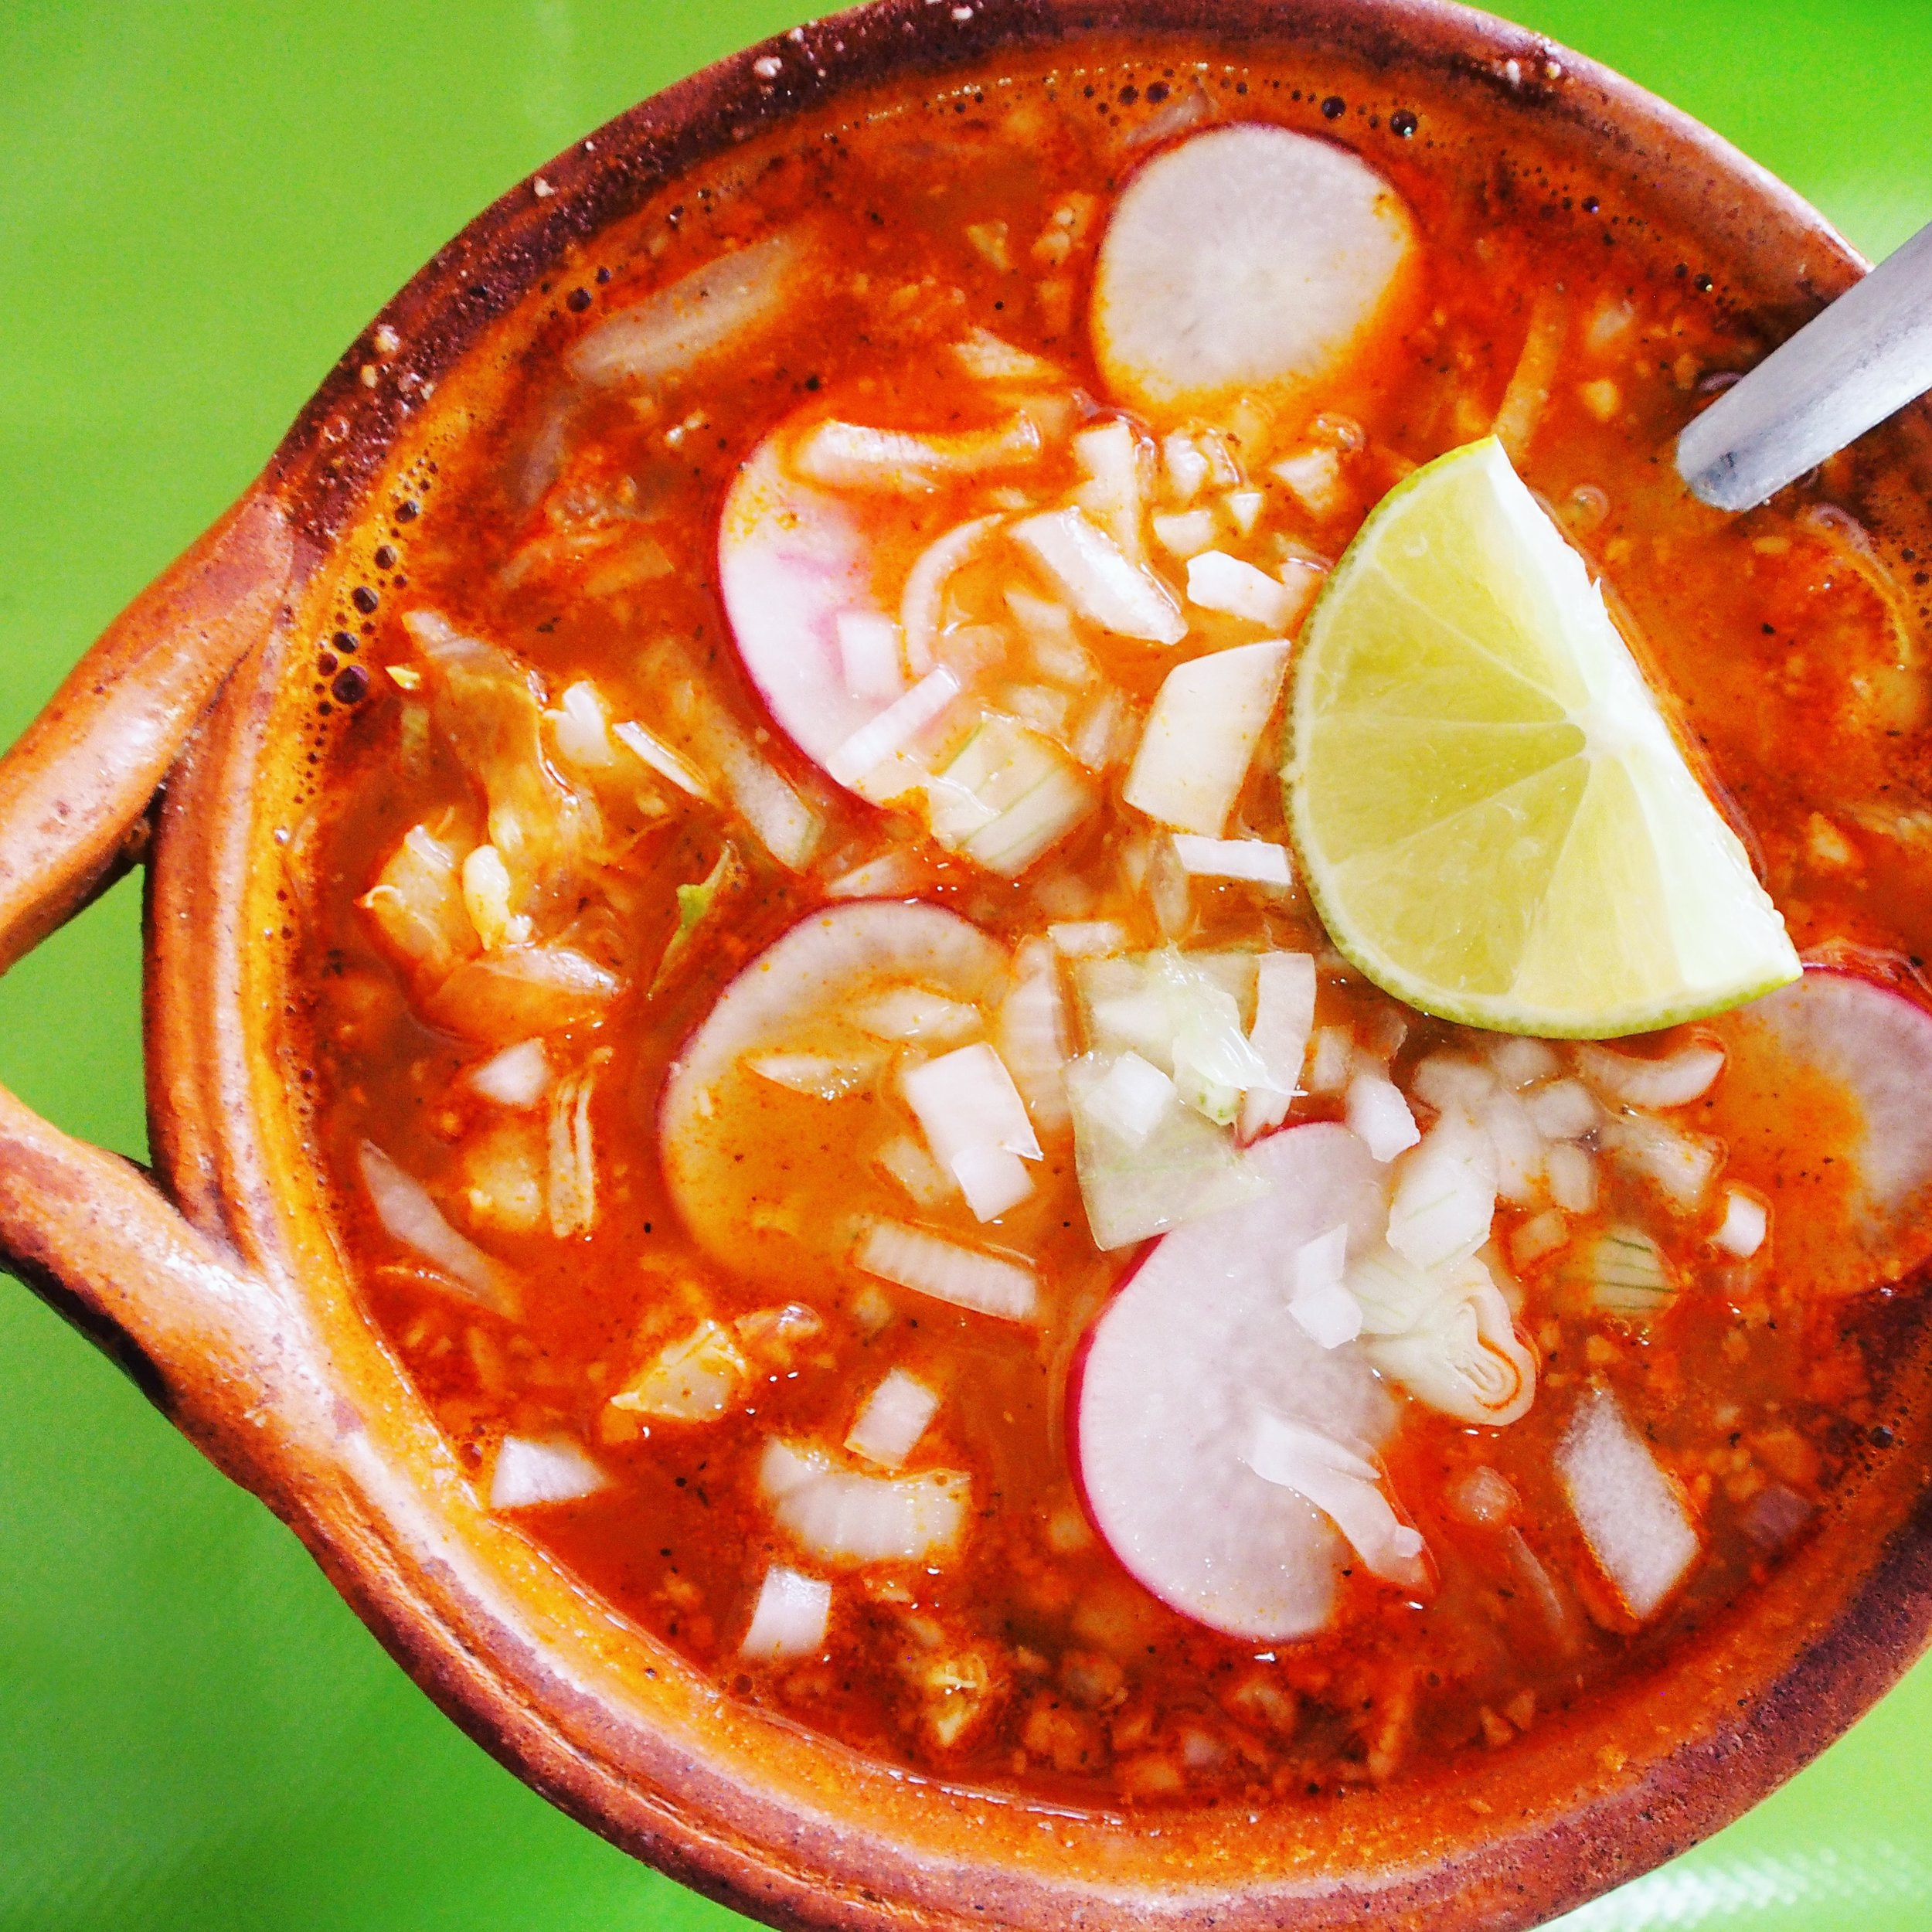 Here is posole soup from el Jurado restaurant in Playa del Carmen. The posole was traditional and delicious!